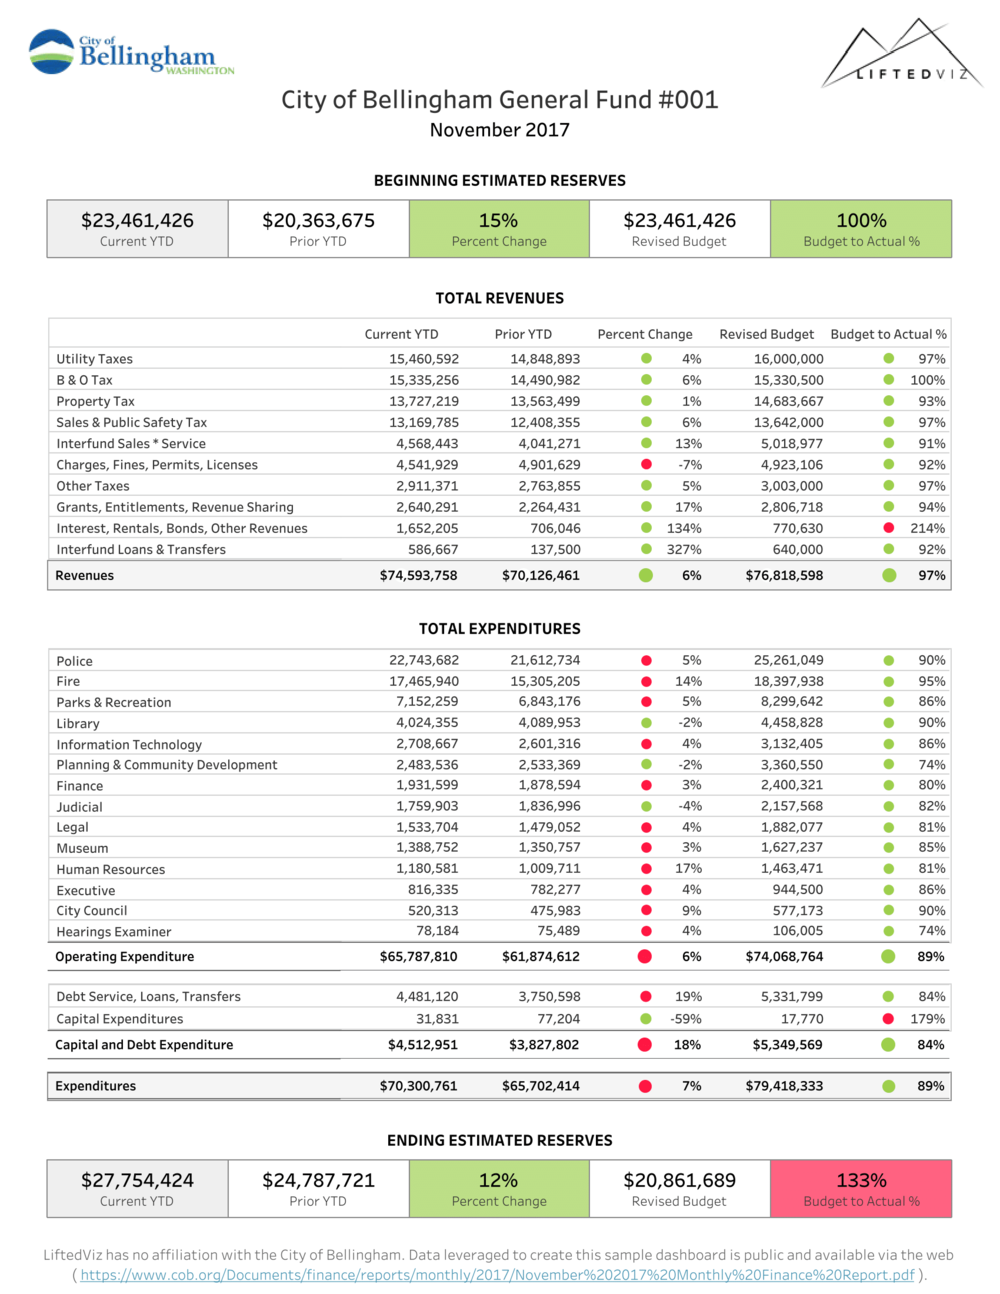 Lifted City of Bellingham General Fund Data